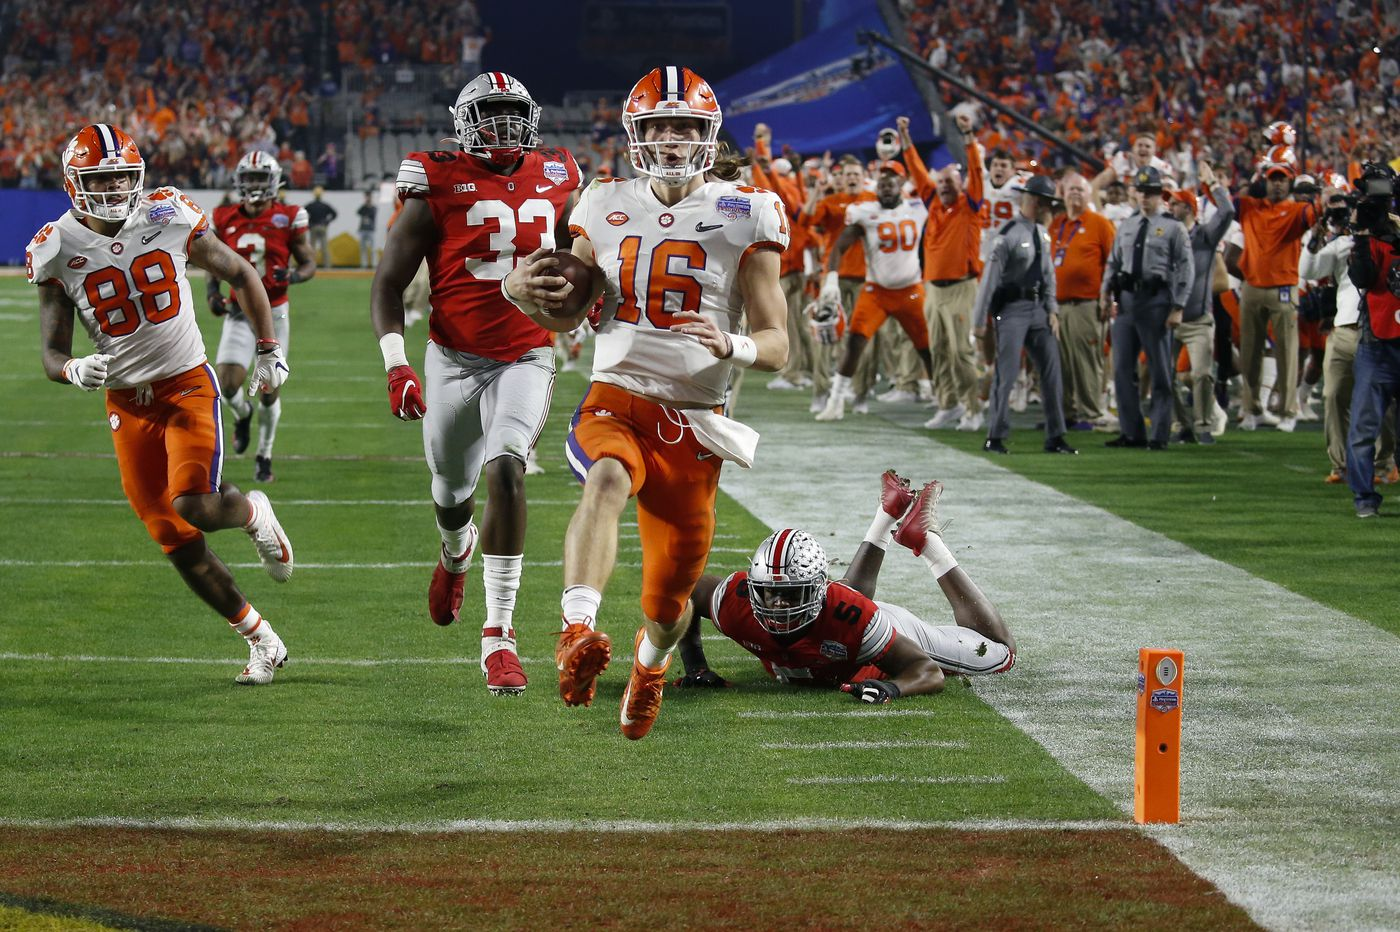 Staff Writer Tyler Zeman thinks Clemson will repeat as National Champions.